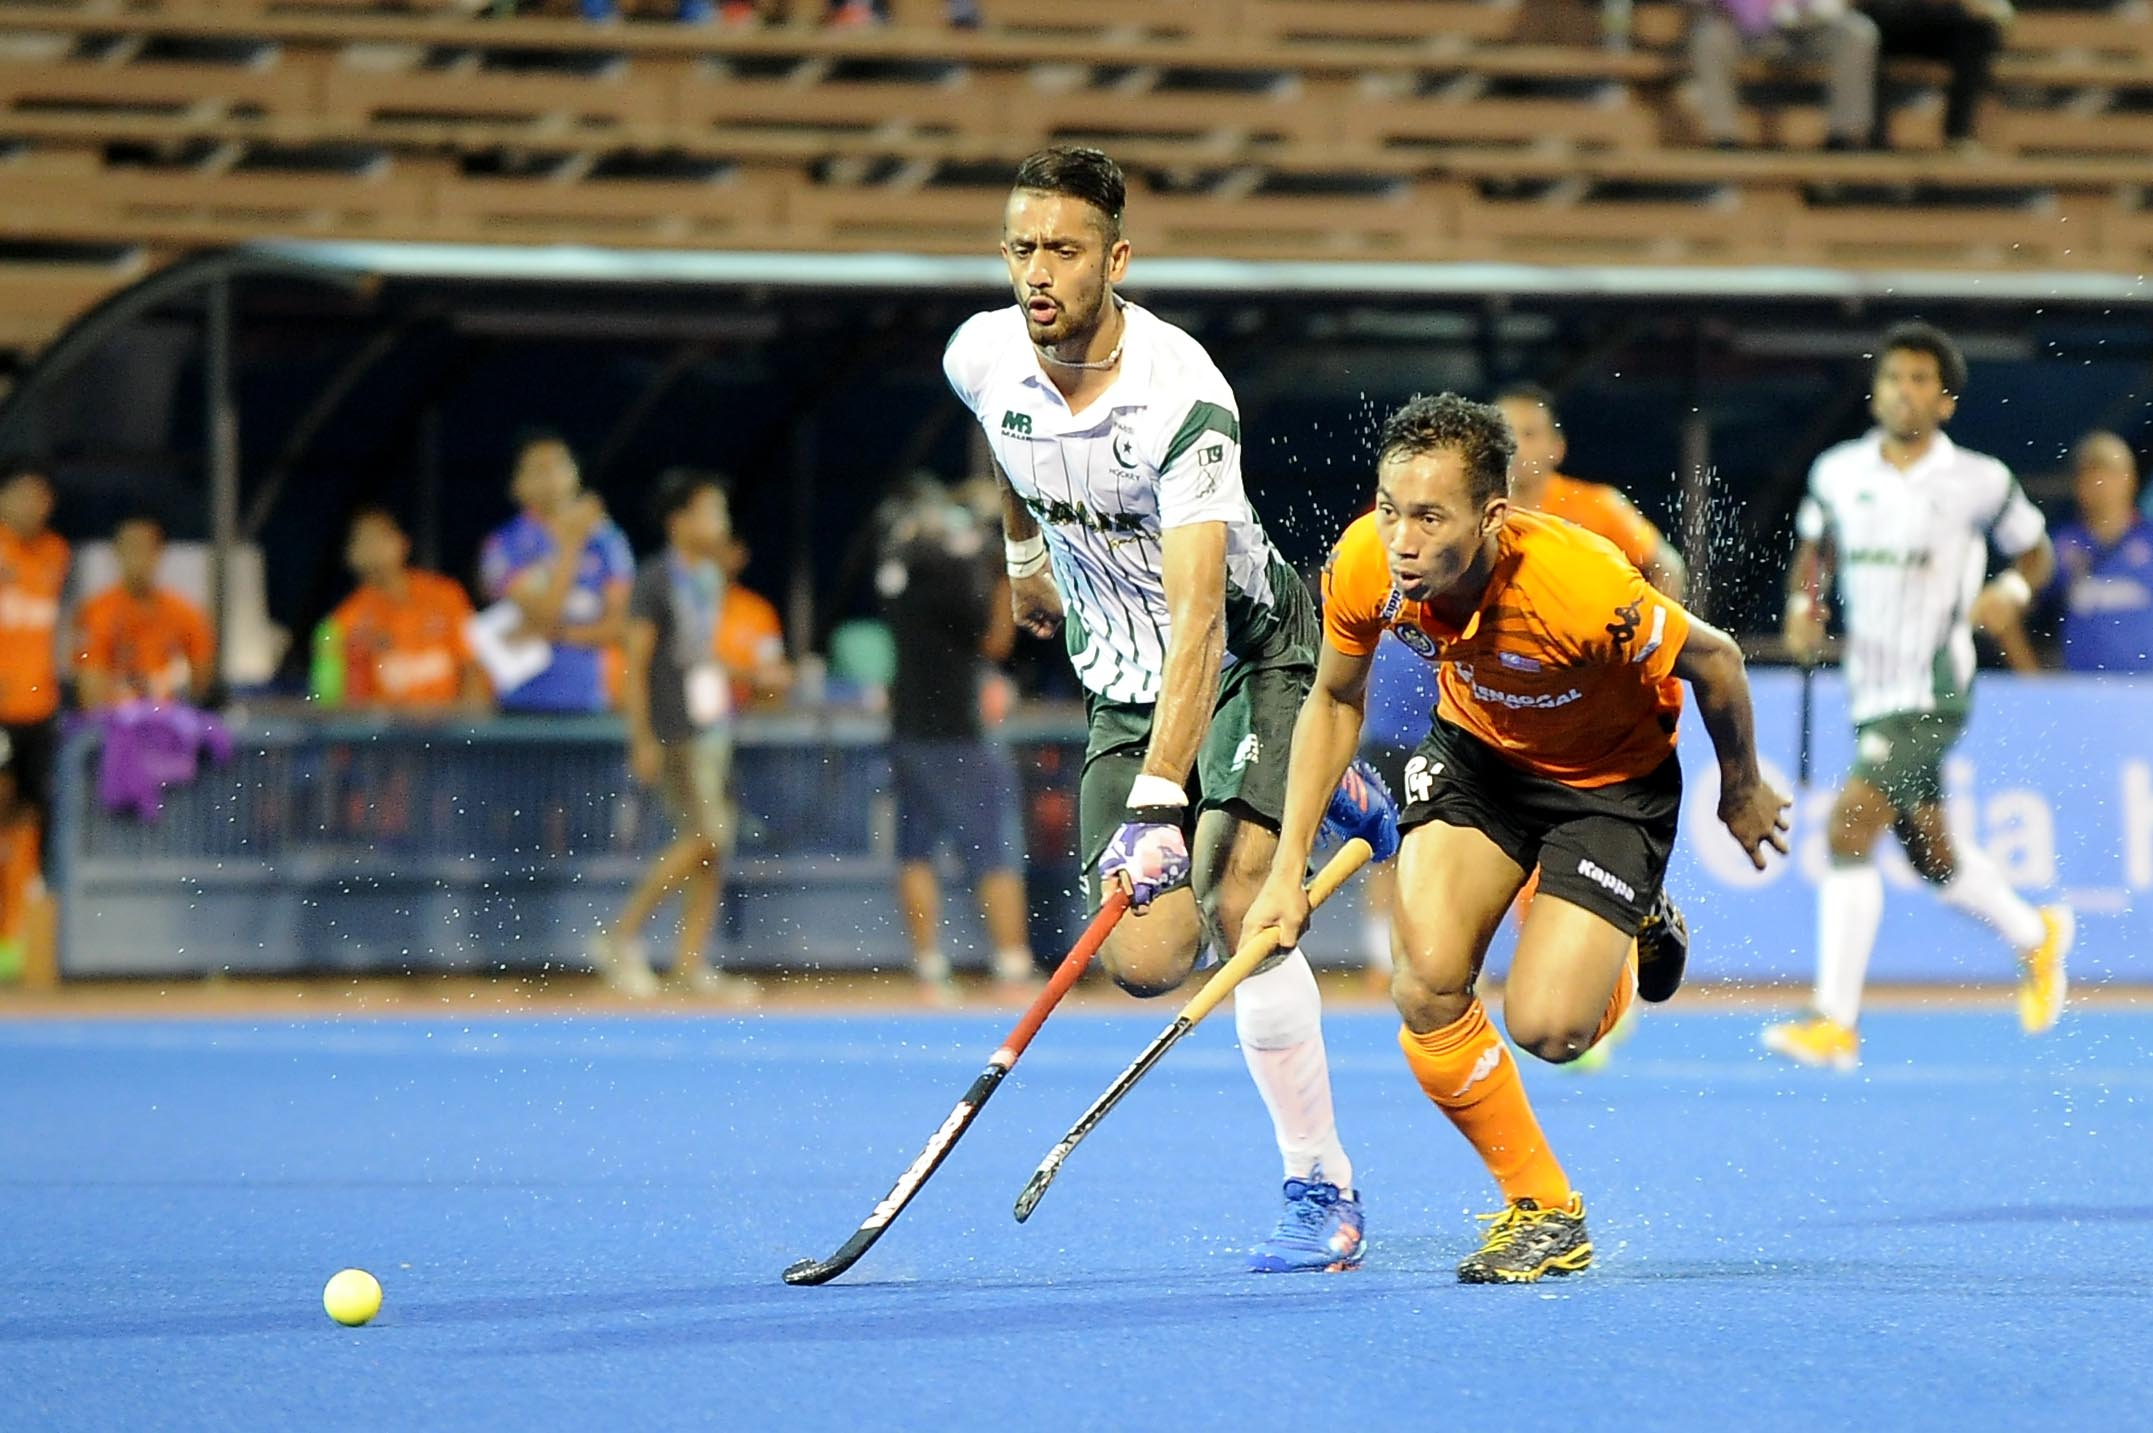 Nik Aiman Rosemi (right) races to the ball with a Pakistani defender caught on his heels during the opening match of the QNET 4th Men's Asian Champions Trophy 2016 at the Wisma Belia Hockey Stadium, Kuantan today. Malaysia won 4-2.